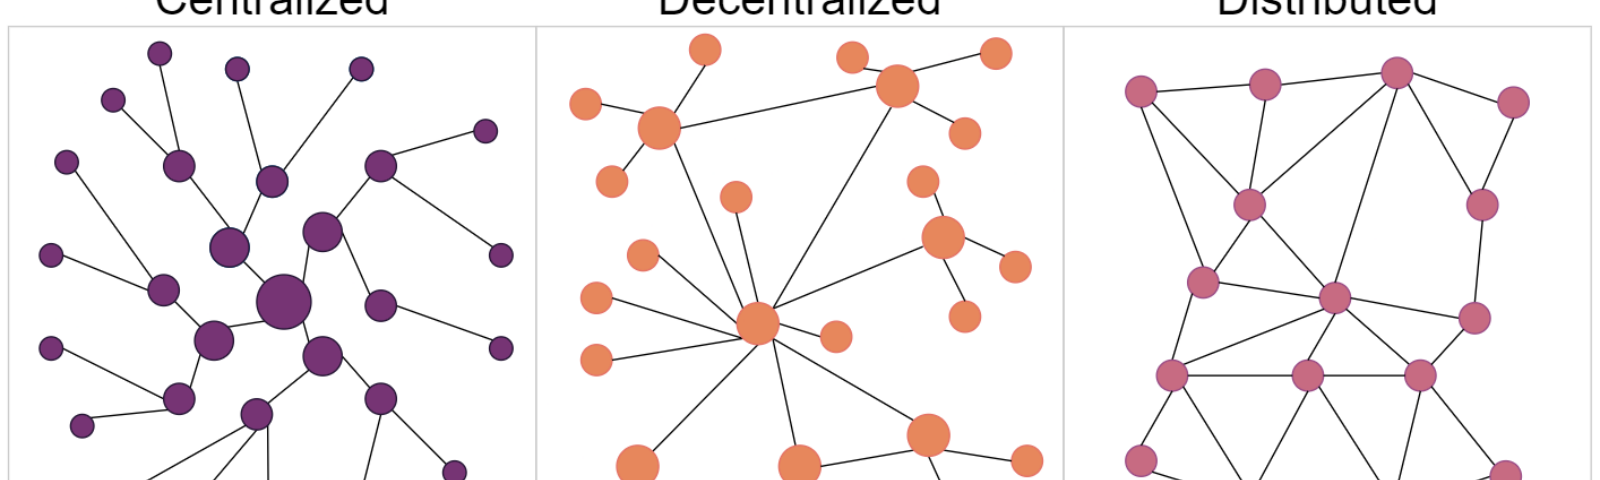 Three diagrams of Centralized, Decentralized, and Distributed systems